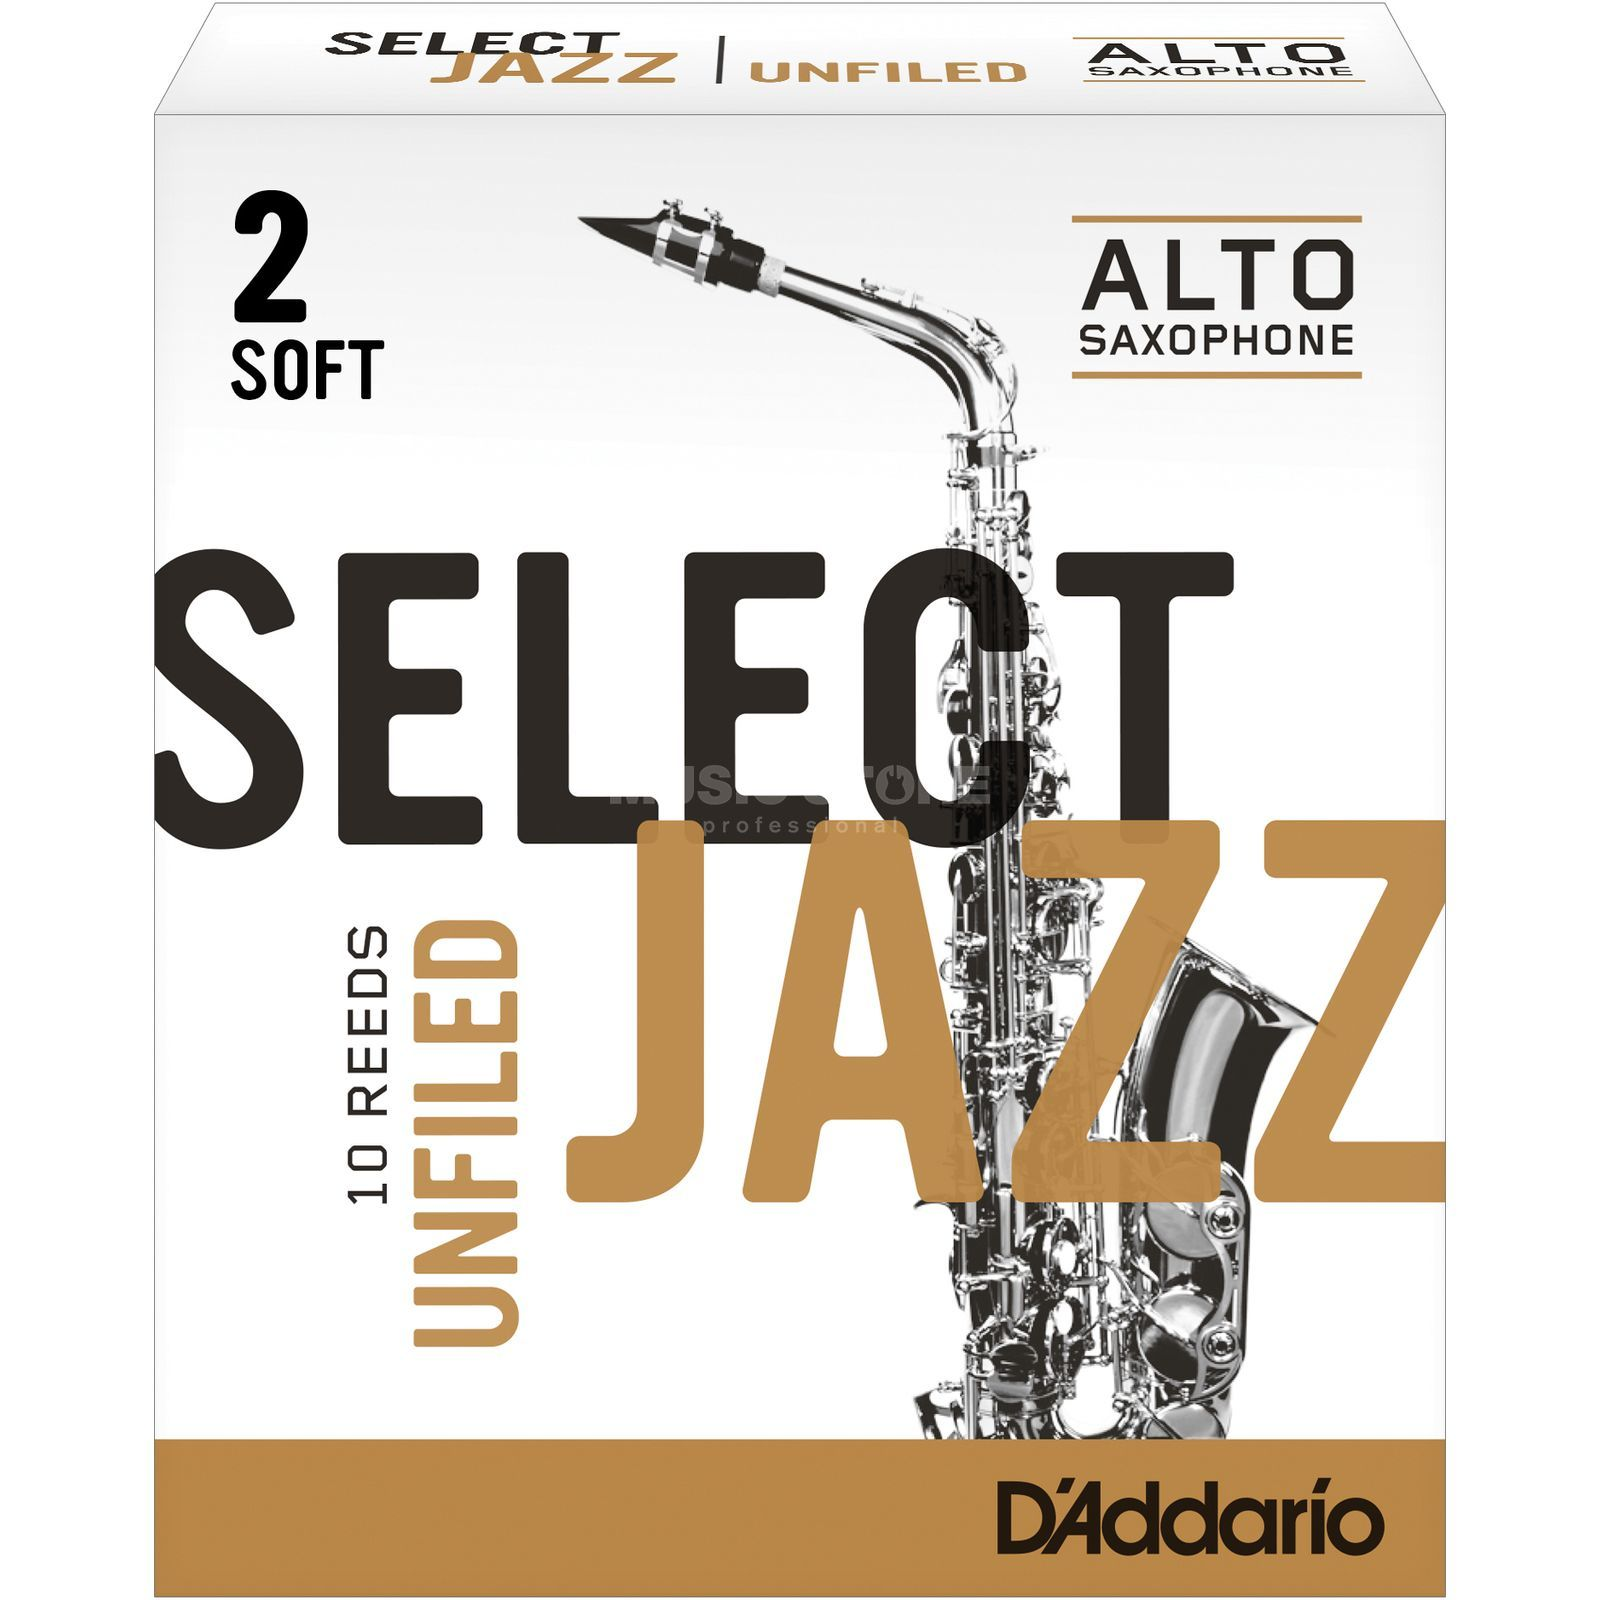 D'Addario Woodwinds Altsaxofoon  2S Unfiled doos met 10 rieten Productafbeelding